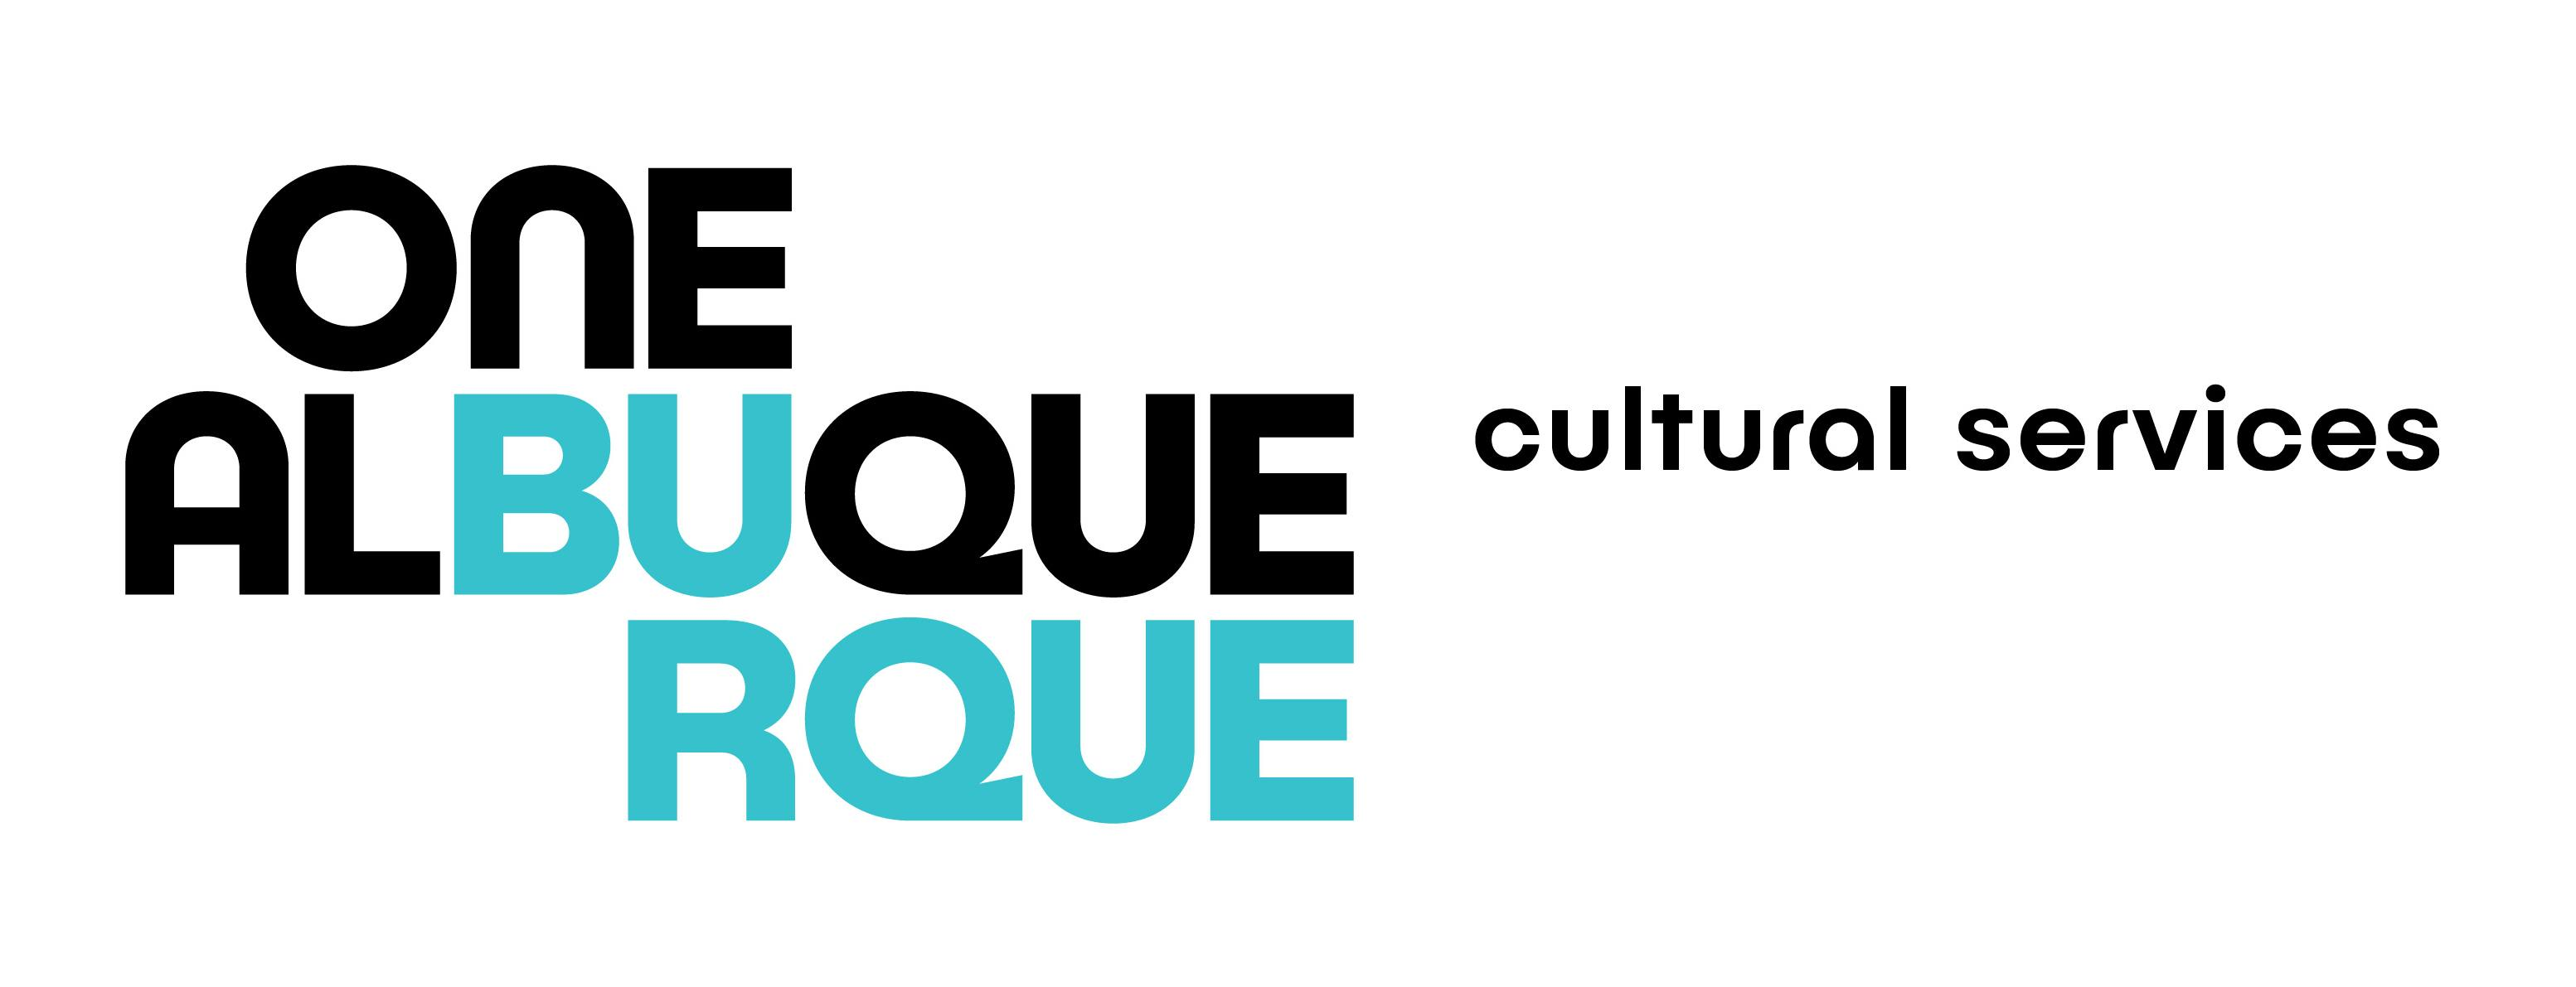 The One Albuquerque Cultural Services Logo